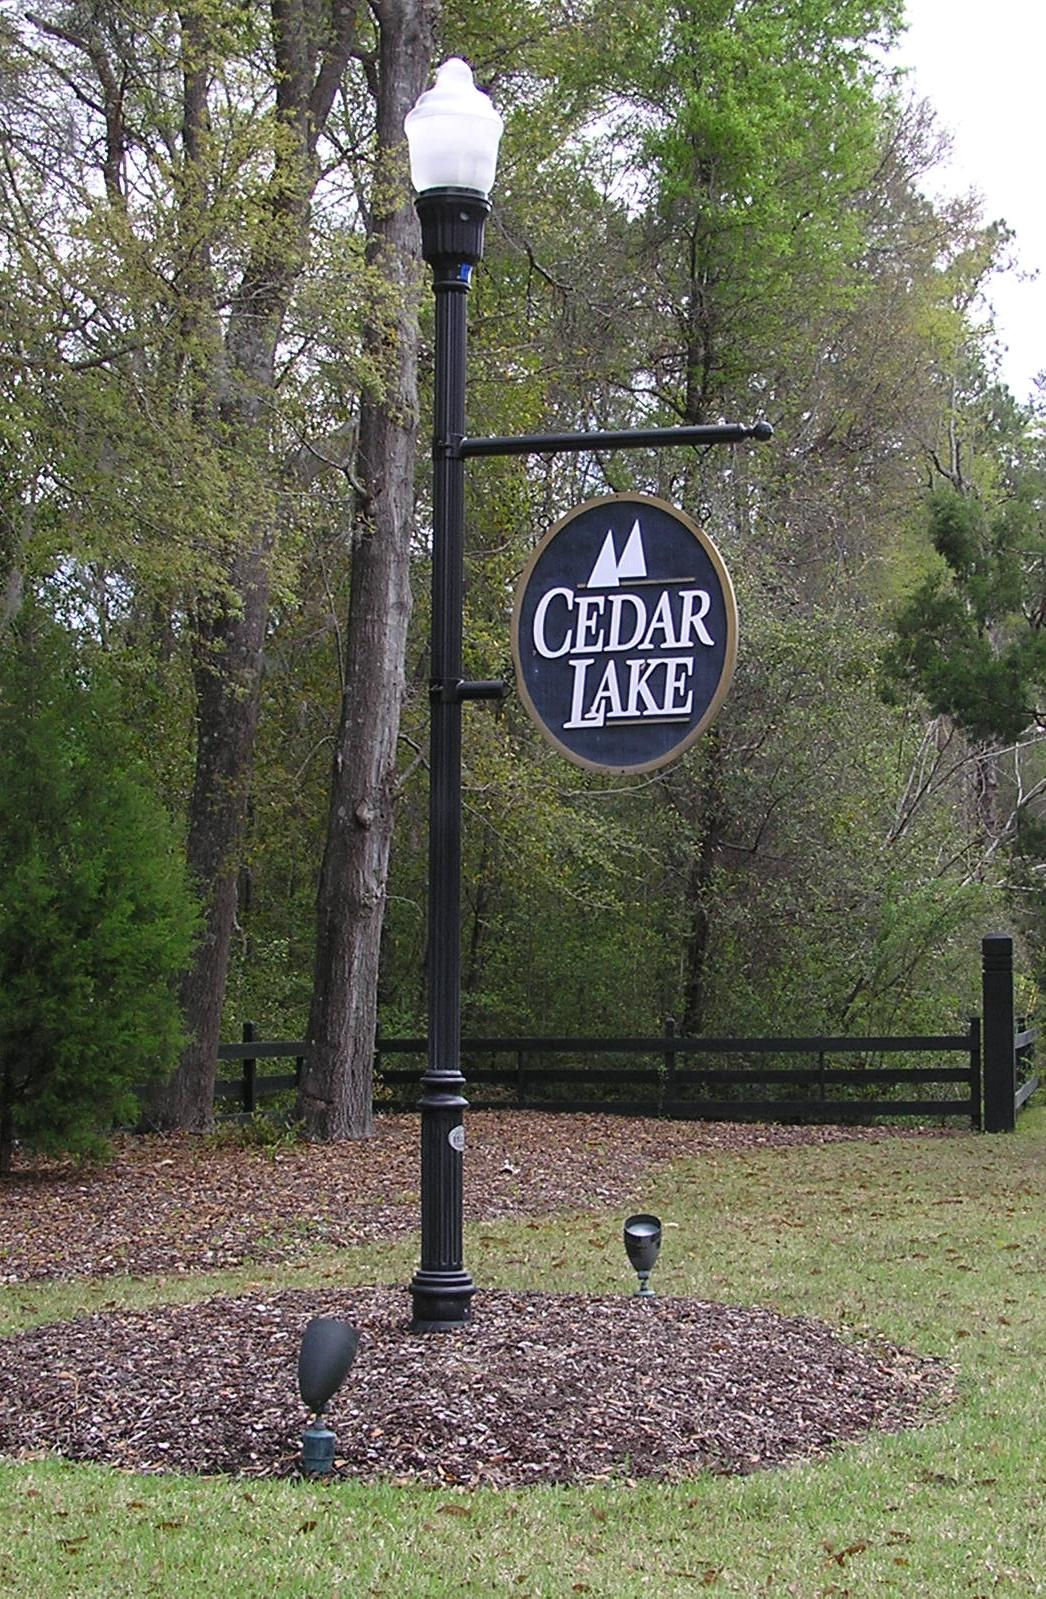 The Entrance Sign For The Neighborhood